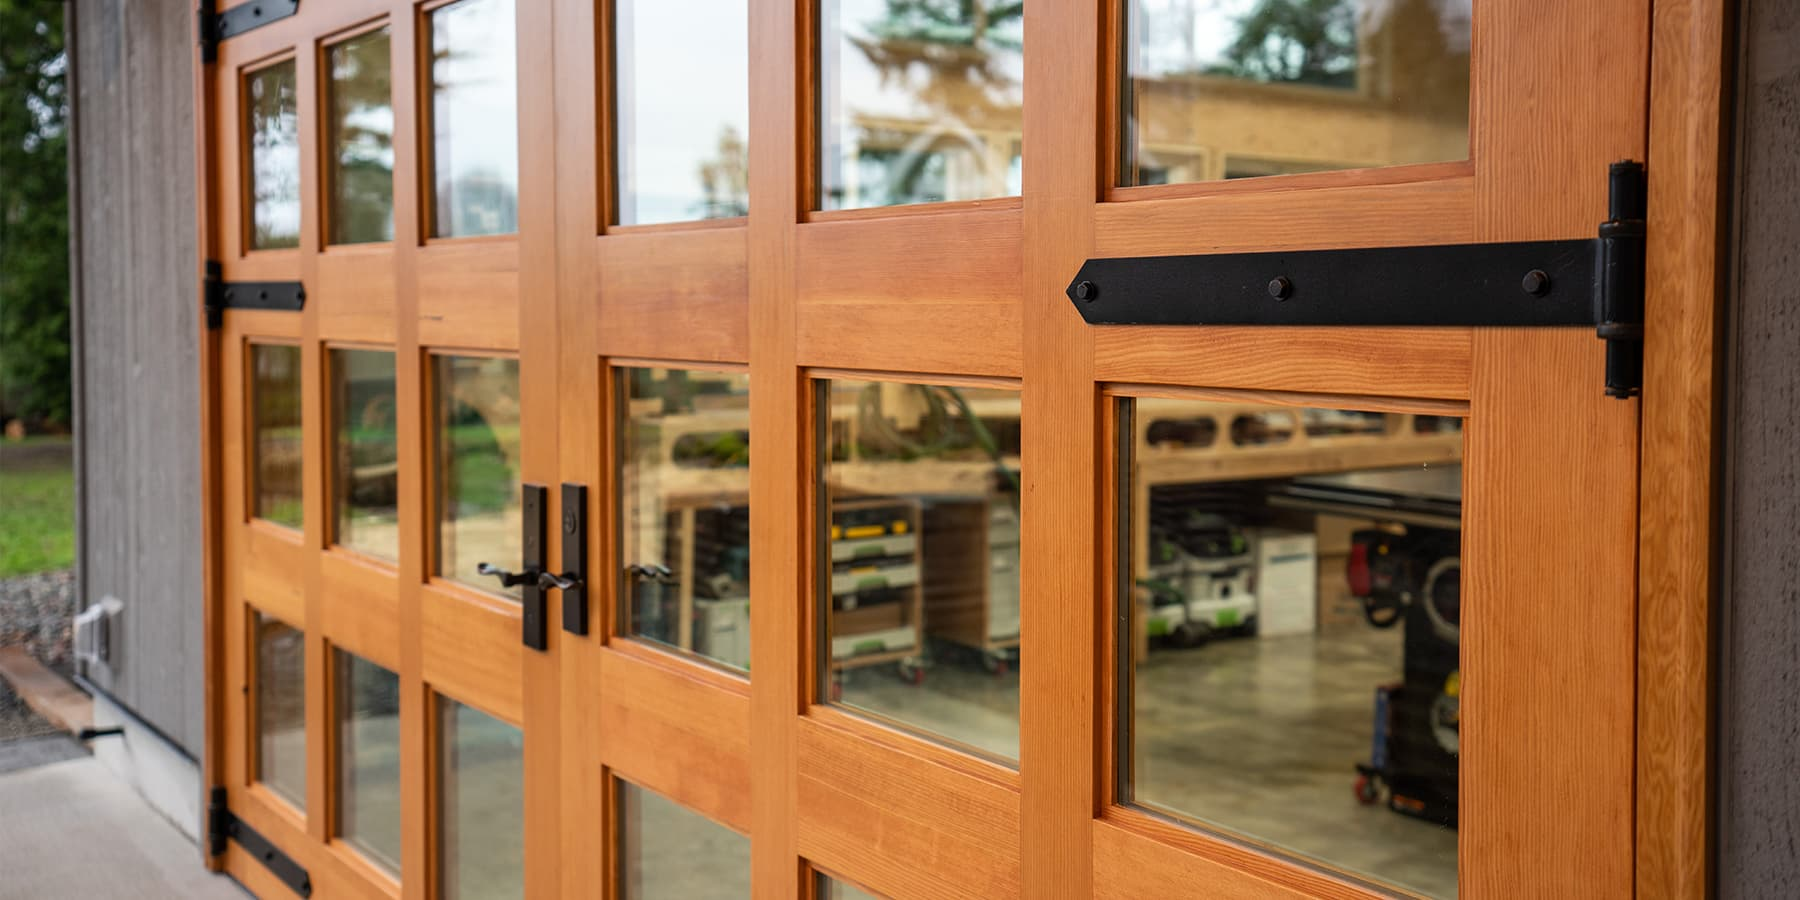 Vertical Grain Douglas Fir Carriage Door image close up highlighting wood grain, strap hinges, and glass panes. Door designed by RealCraft.